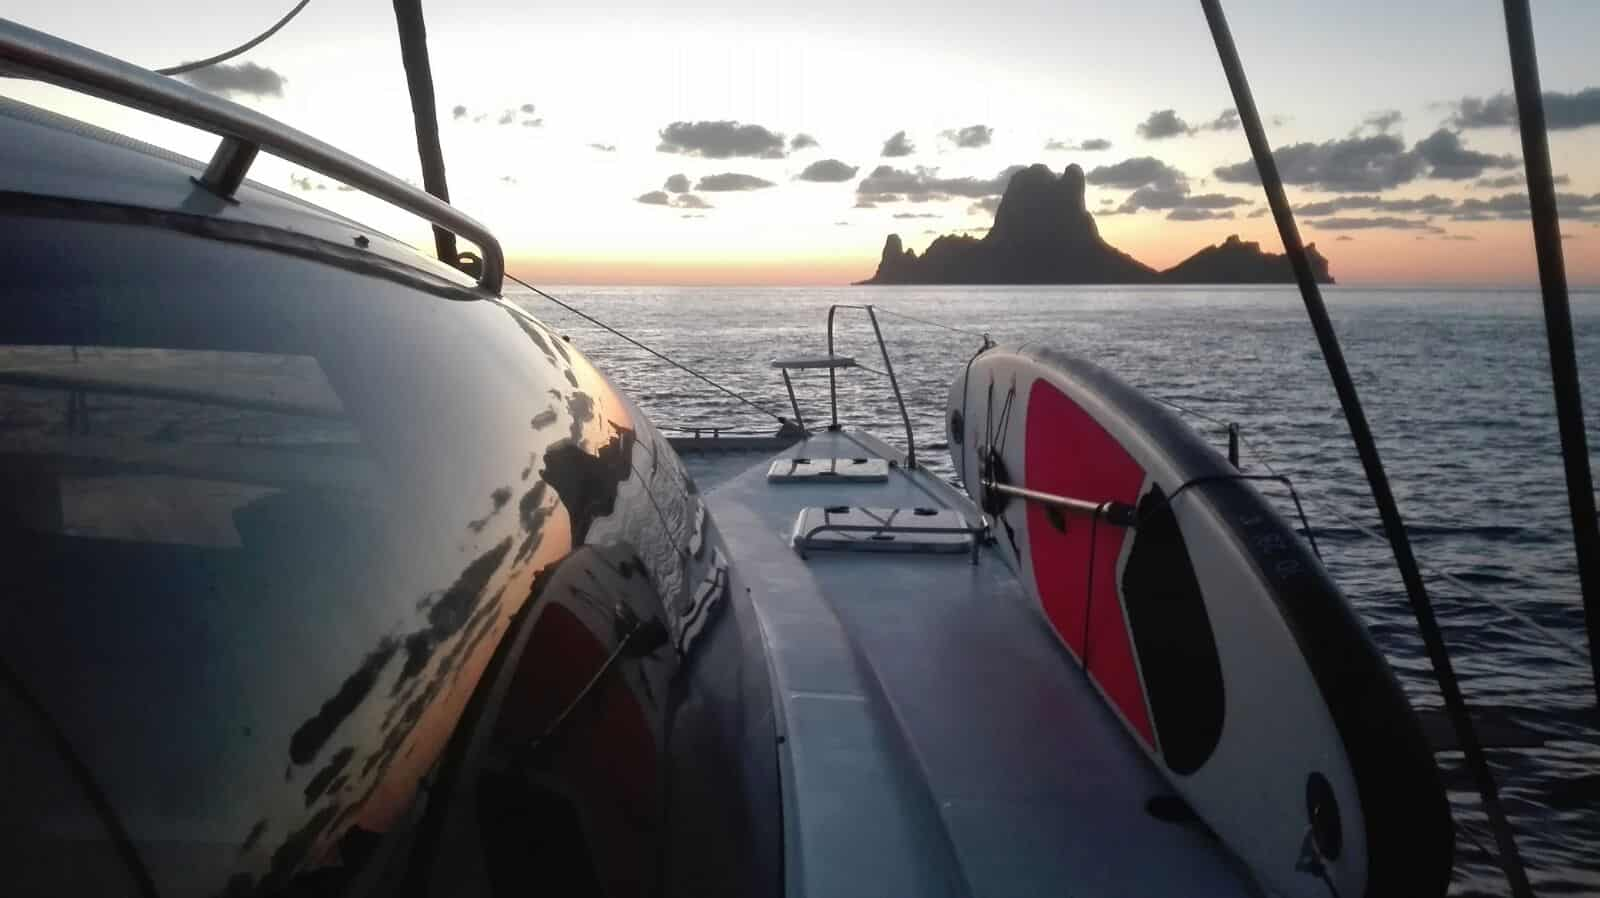 Day charter Ibiza - Es Vedra at sunset